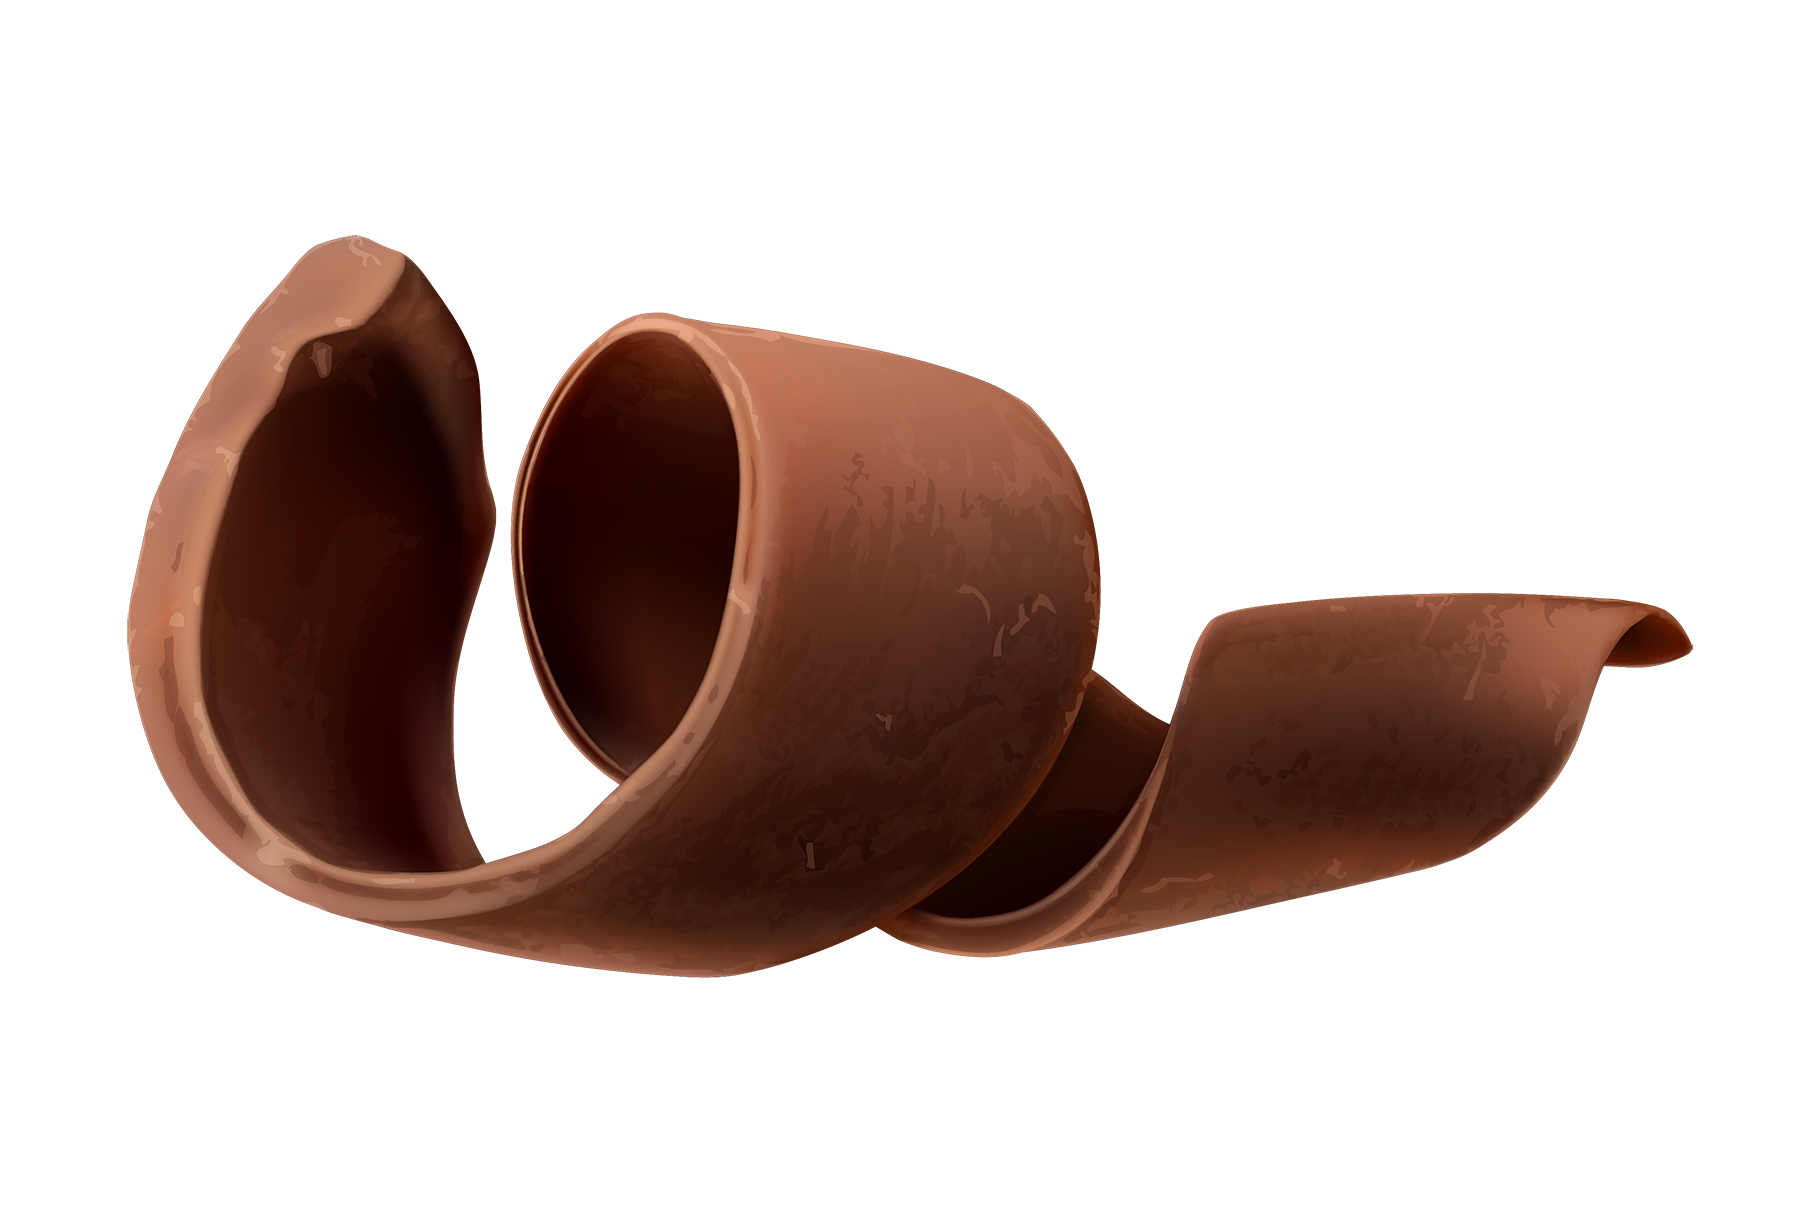 Chocolate bar, chocolate shavings, pieces, cocoa, vector set example image 5